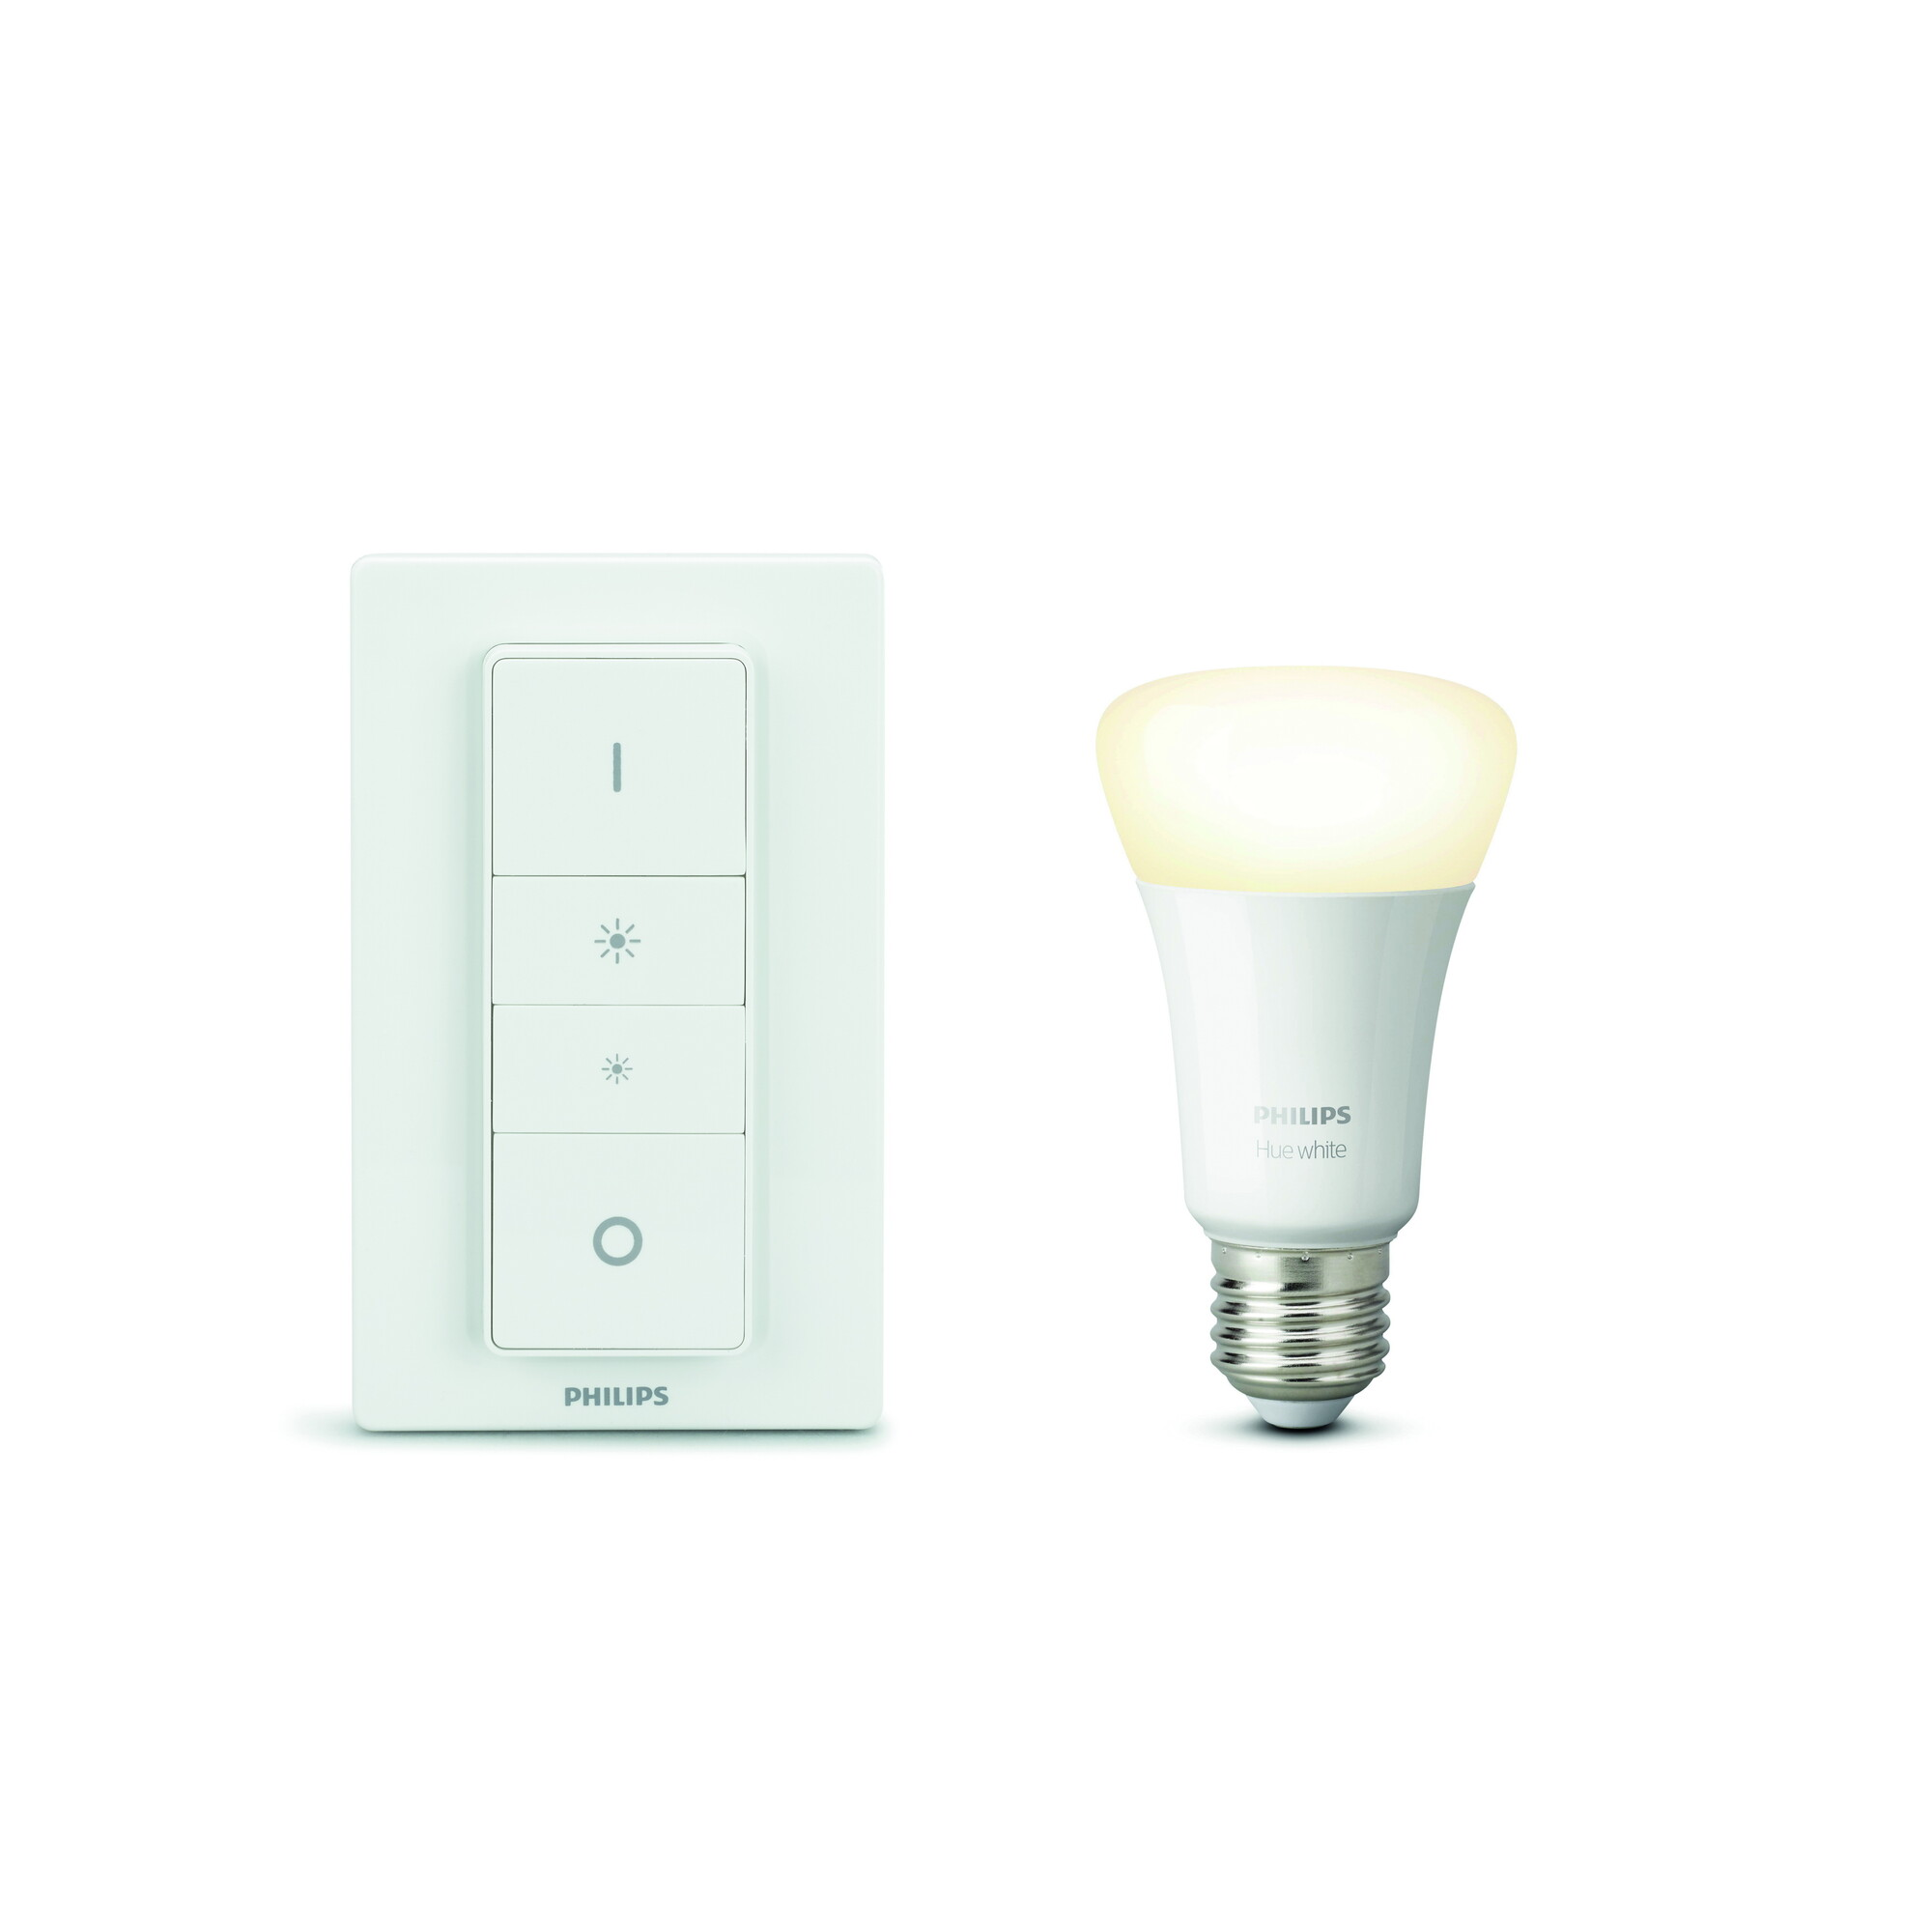 Philips HUE White E27 9,5W 806lm 2700K Lamp Frosted